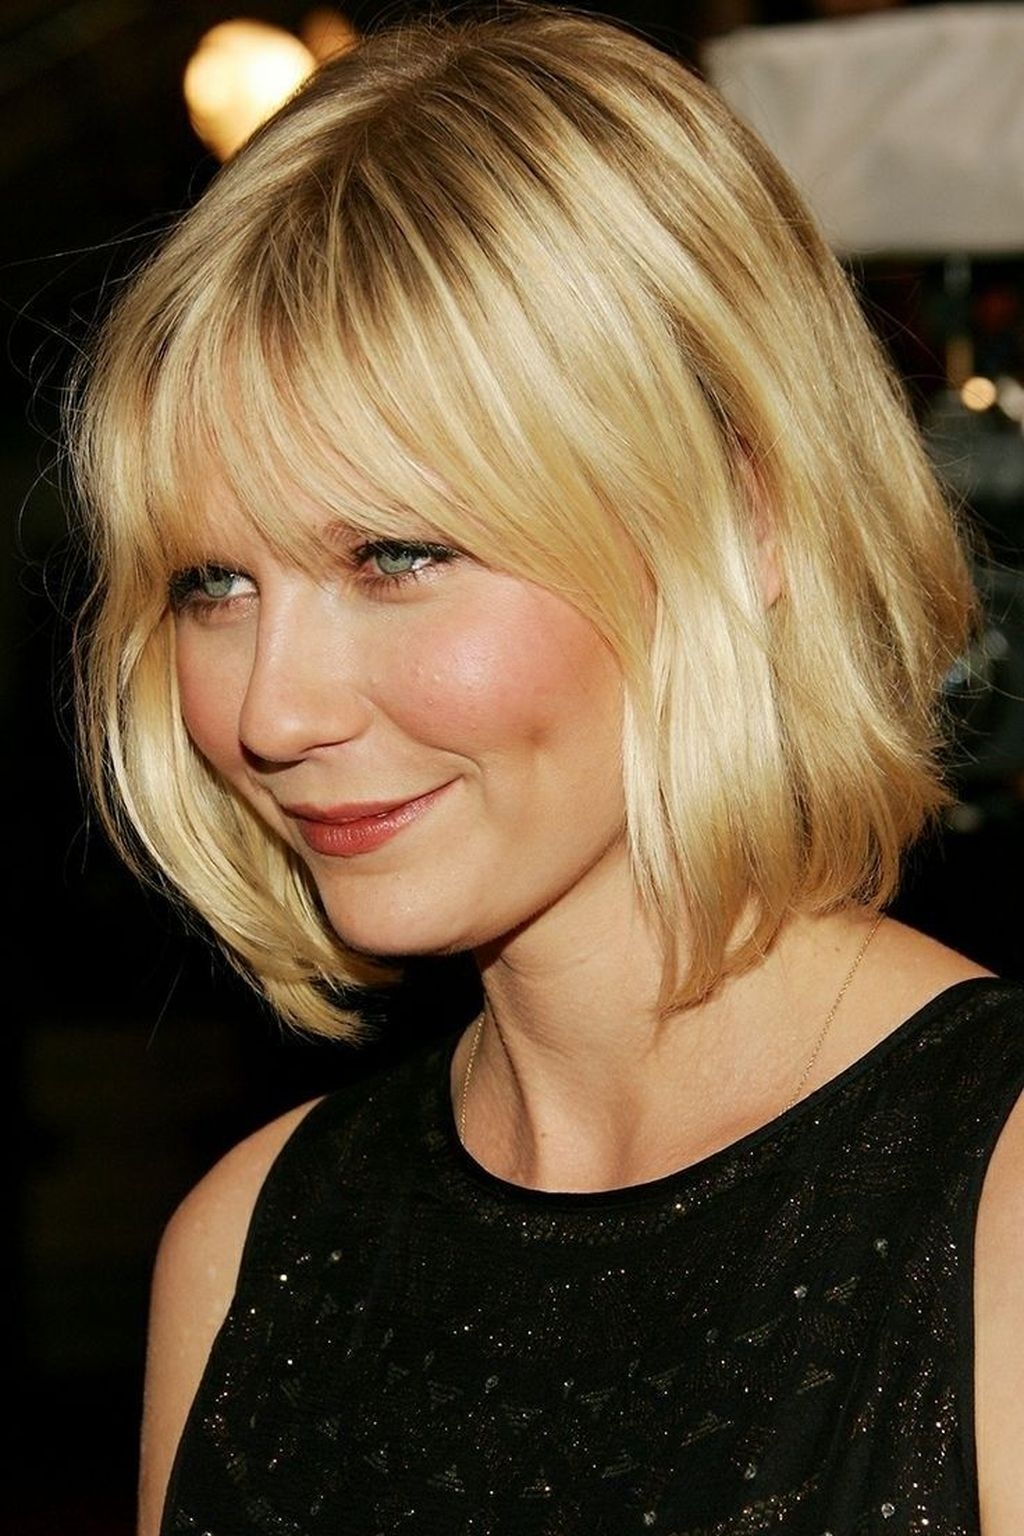 Newest Blonde Short Hair Styles Ideas For Females 201930